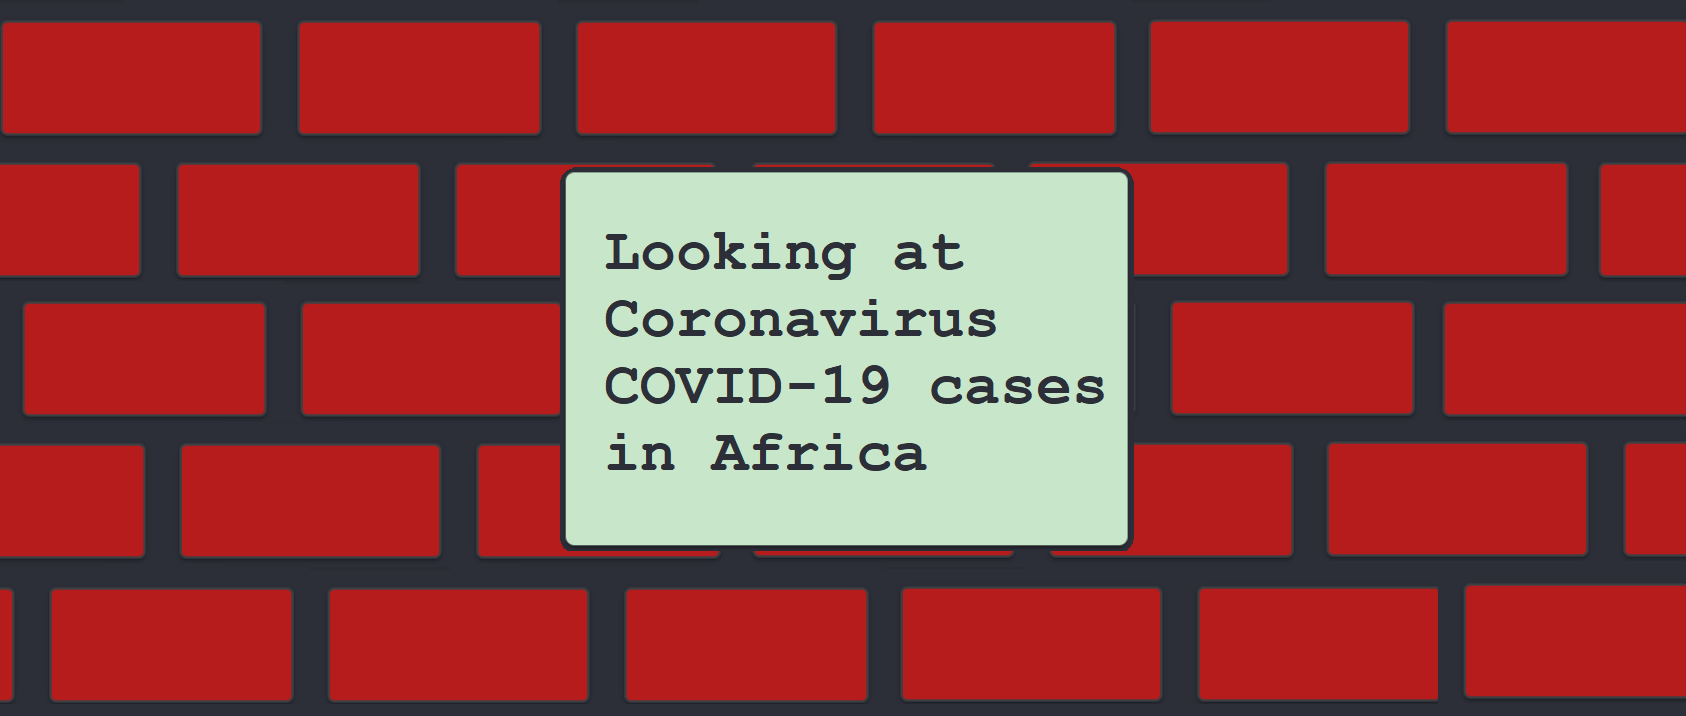 Looking at Coronavirus COVID-19 cases in Africa